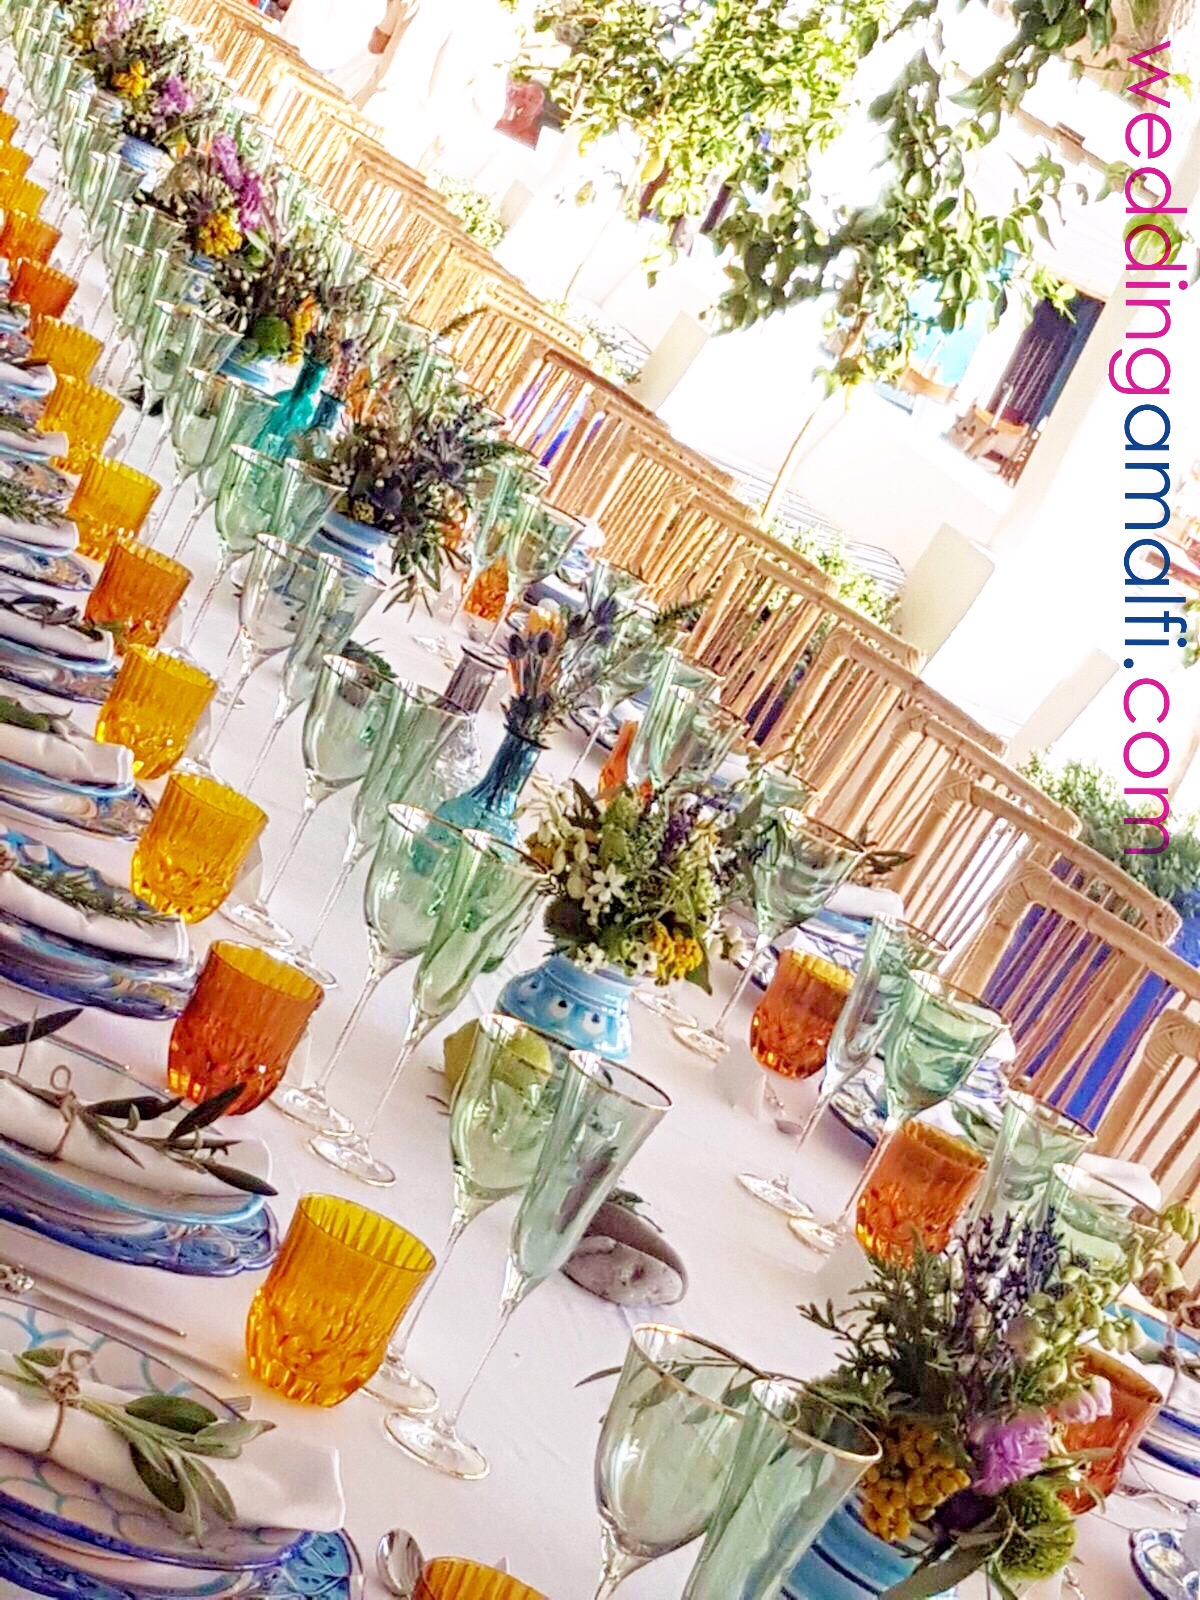 http://www.weddingamalfi.com/wp-content/uploads/Anna-and-Charles-wedding-tables-colorful-decorations.jpeg